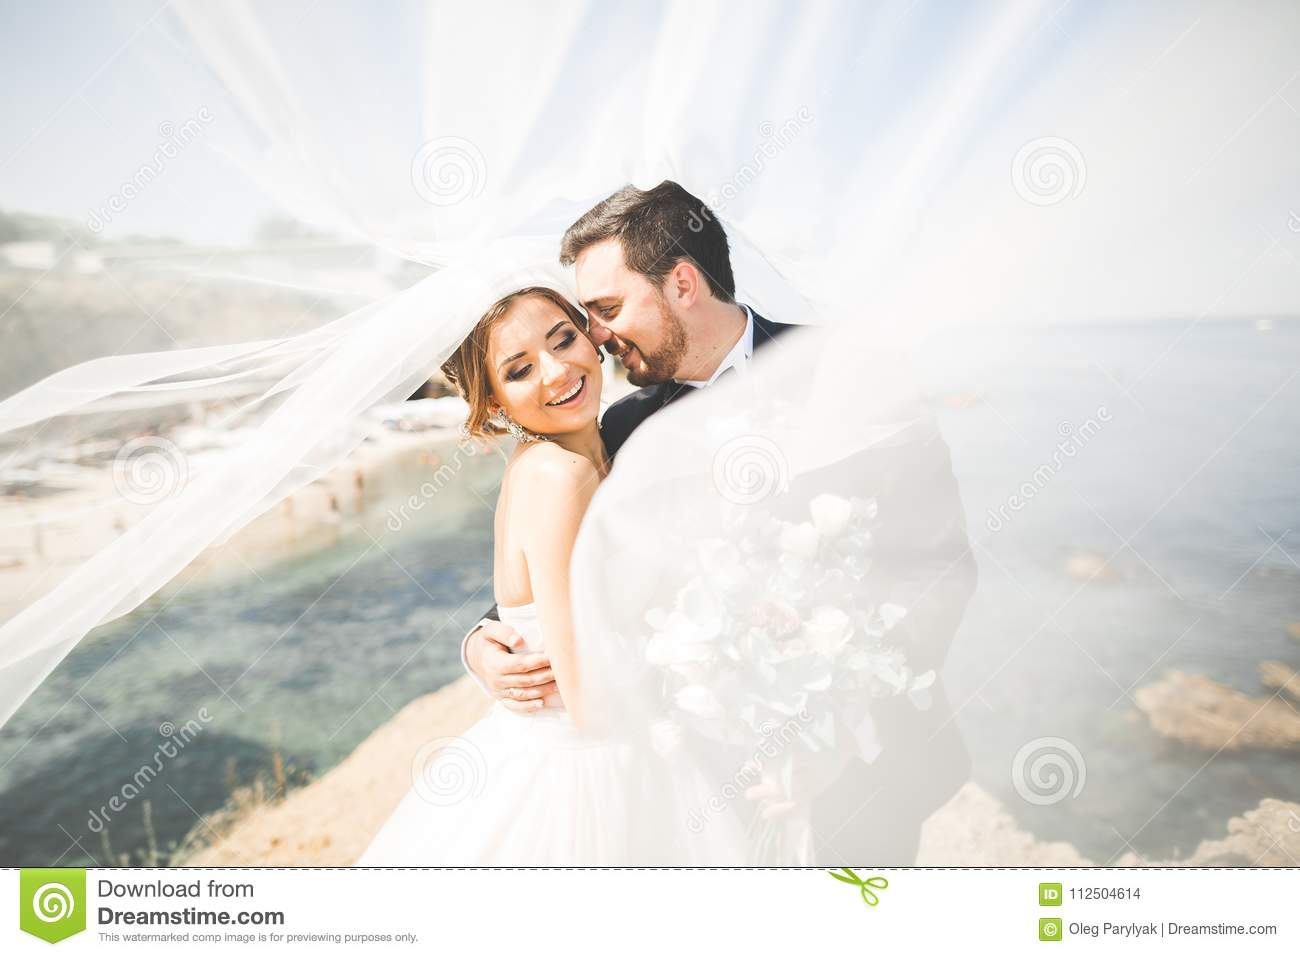 Happy And Romantic Scene Of Just Married Young Wedding Couple Posing On Beautiful Beach Stock Photo Image Of Married Celebration 112504614